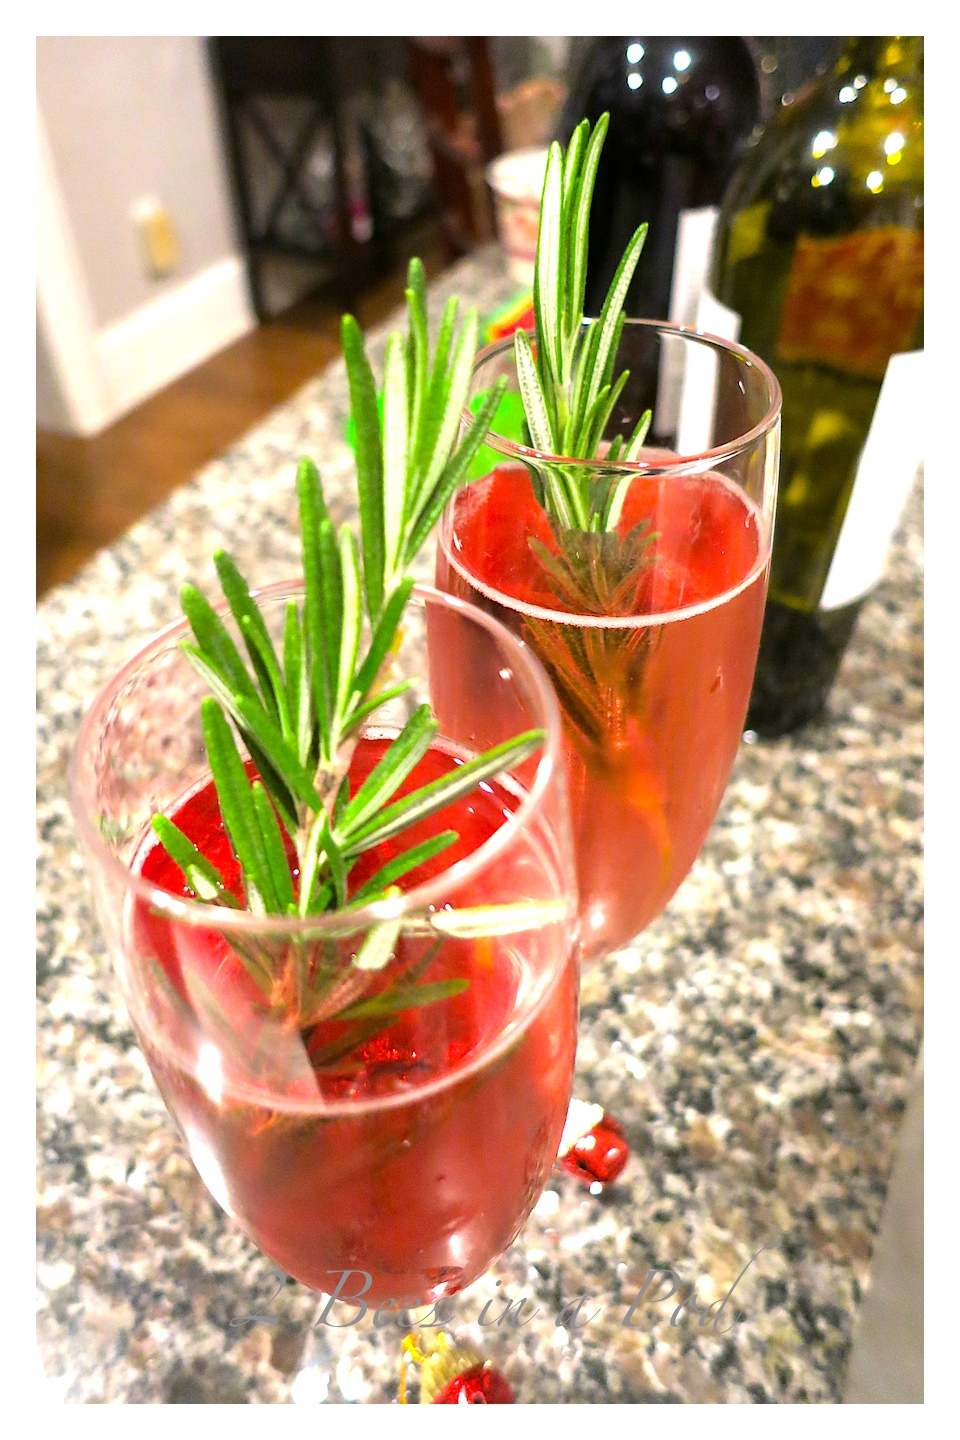 Poinsettia Cocktail - festive for parties. Persecco, cranberry juice and fresh rosemary garnish. Love the added red jingle bells on the champagne flutes.